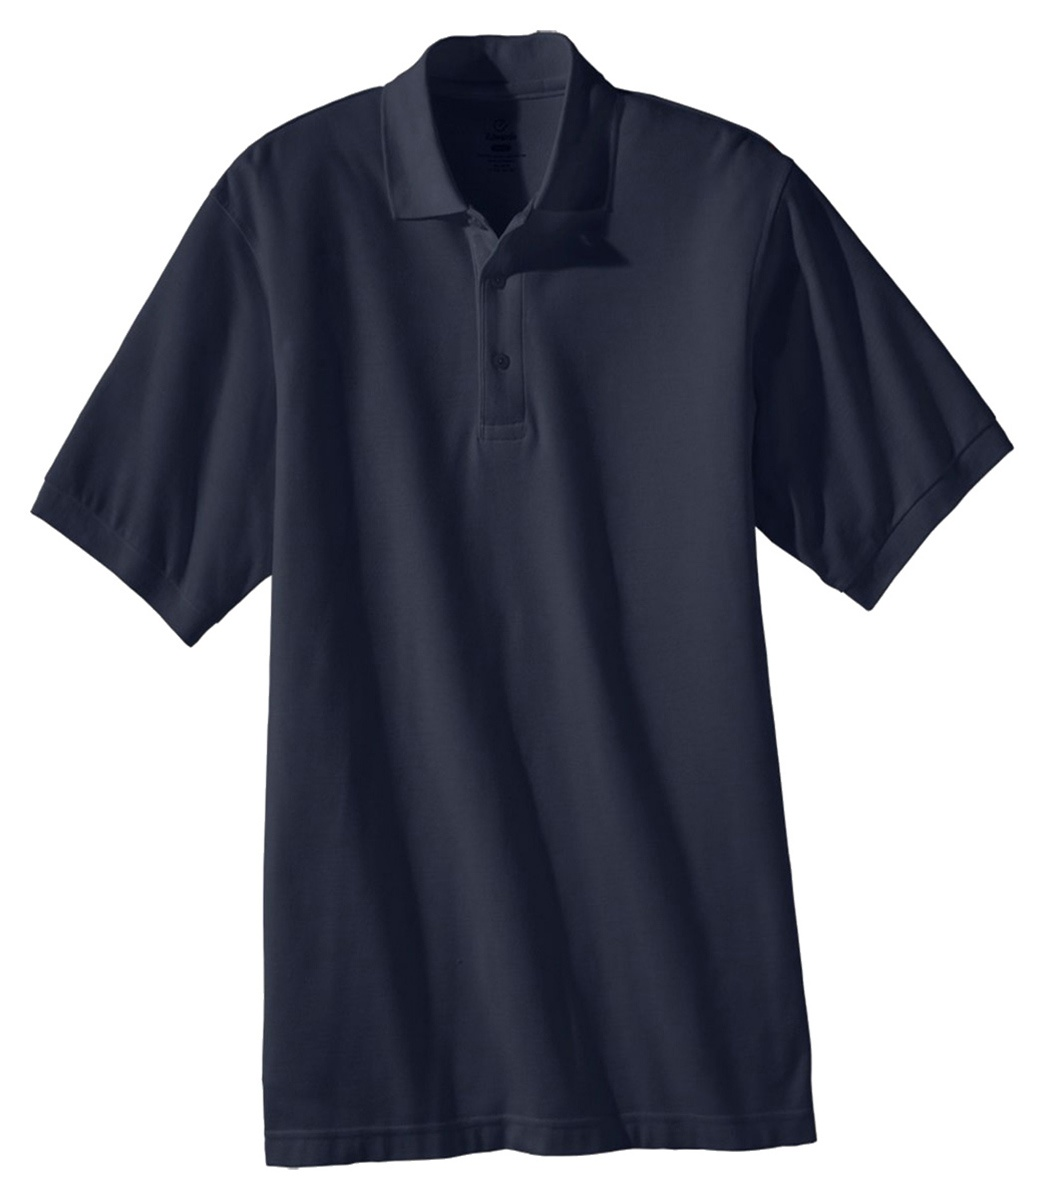 'Edwards 1500 Men's Blended Pique Short Sleeve Polo'